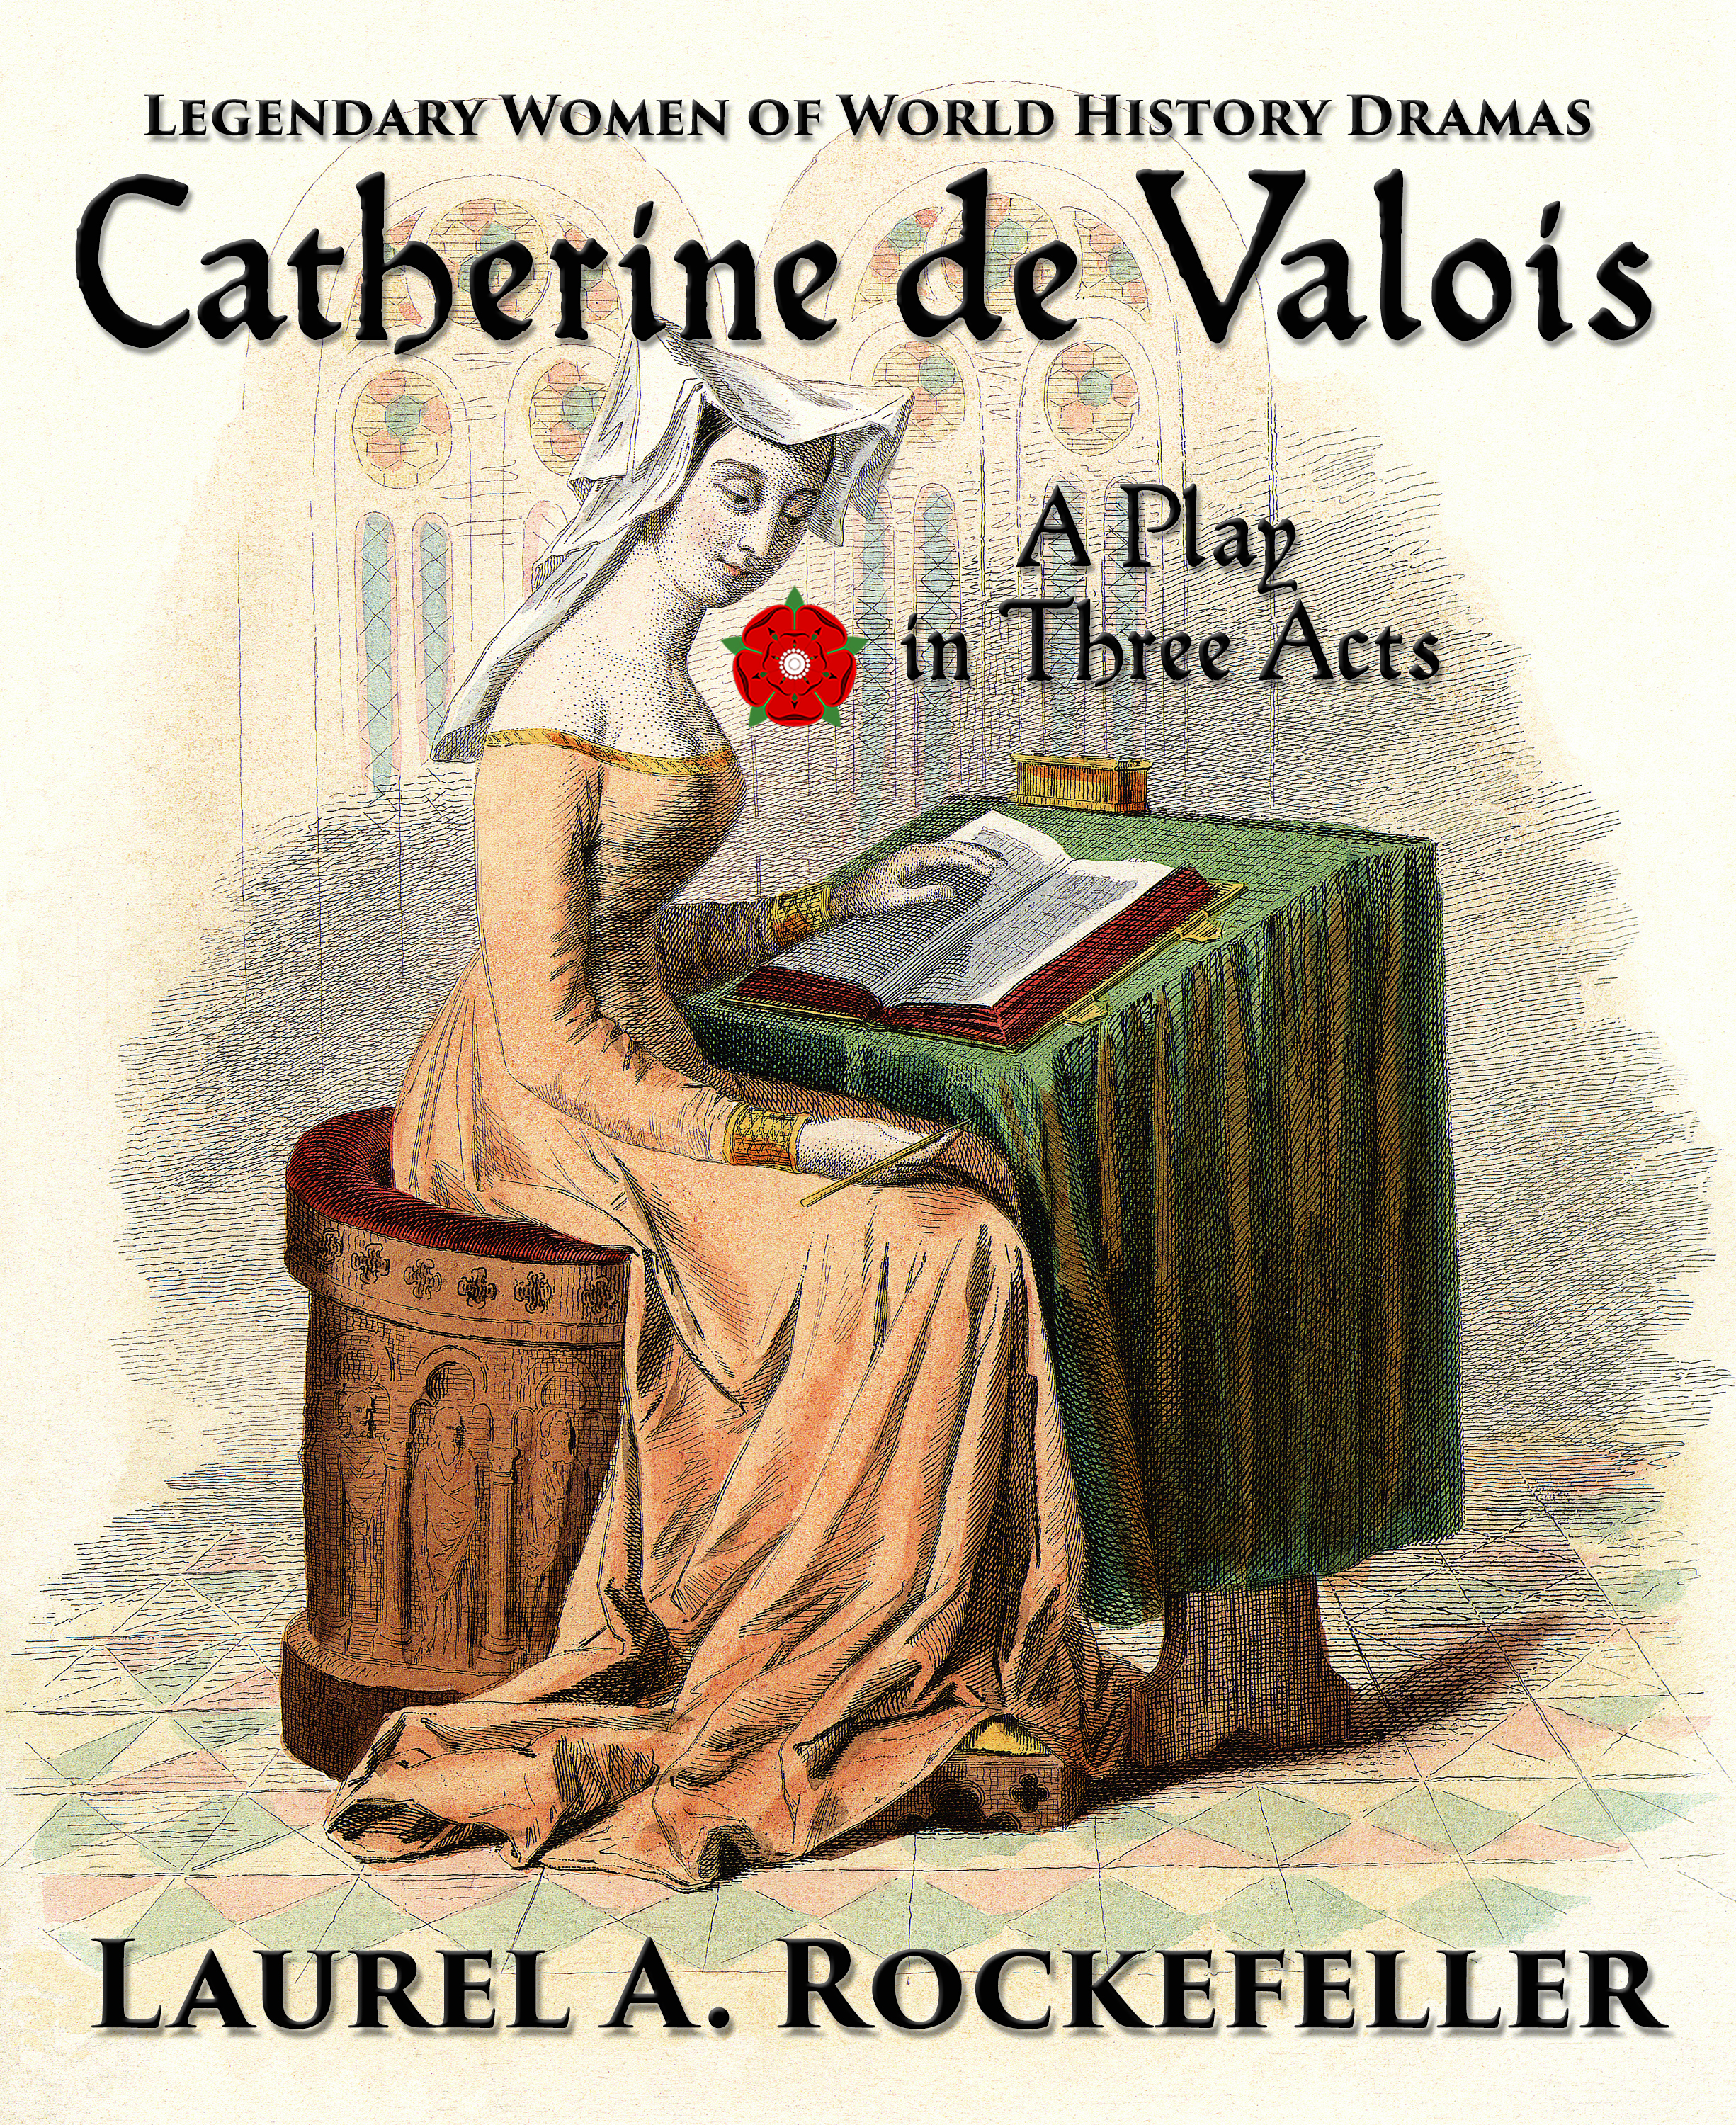 Catherine de valois: a play in three acts